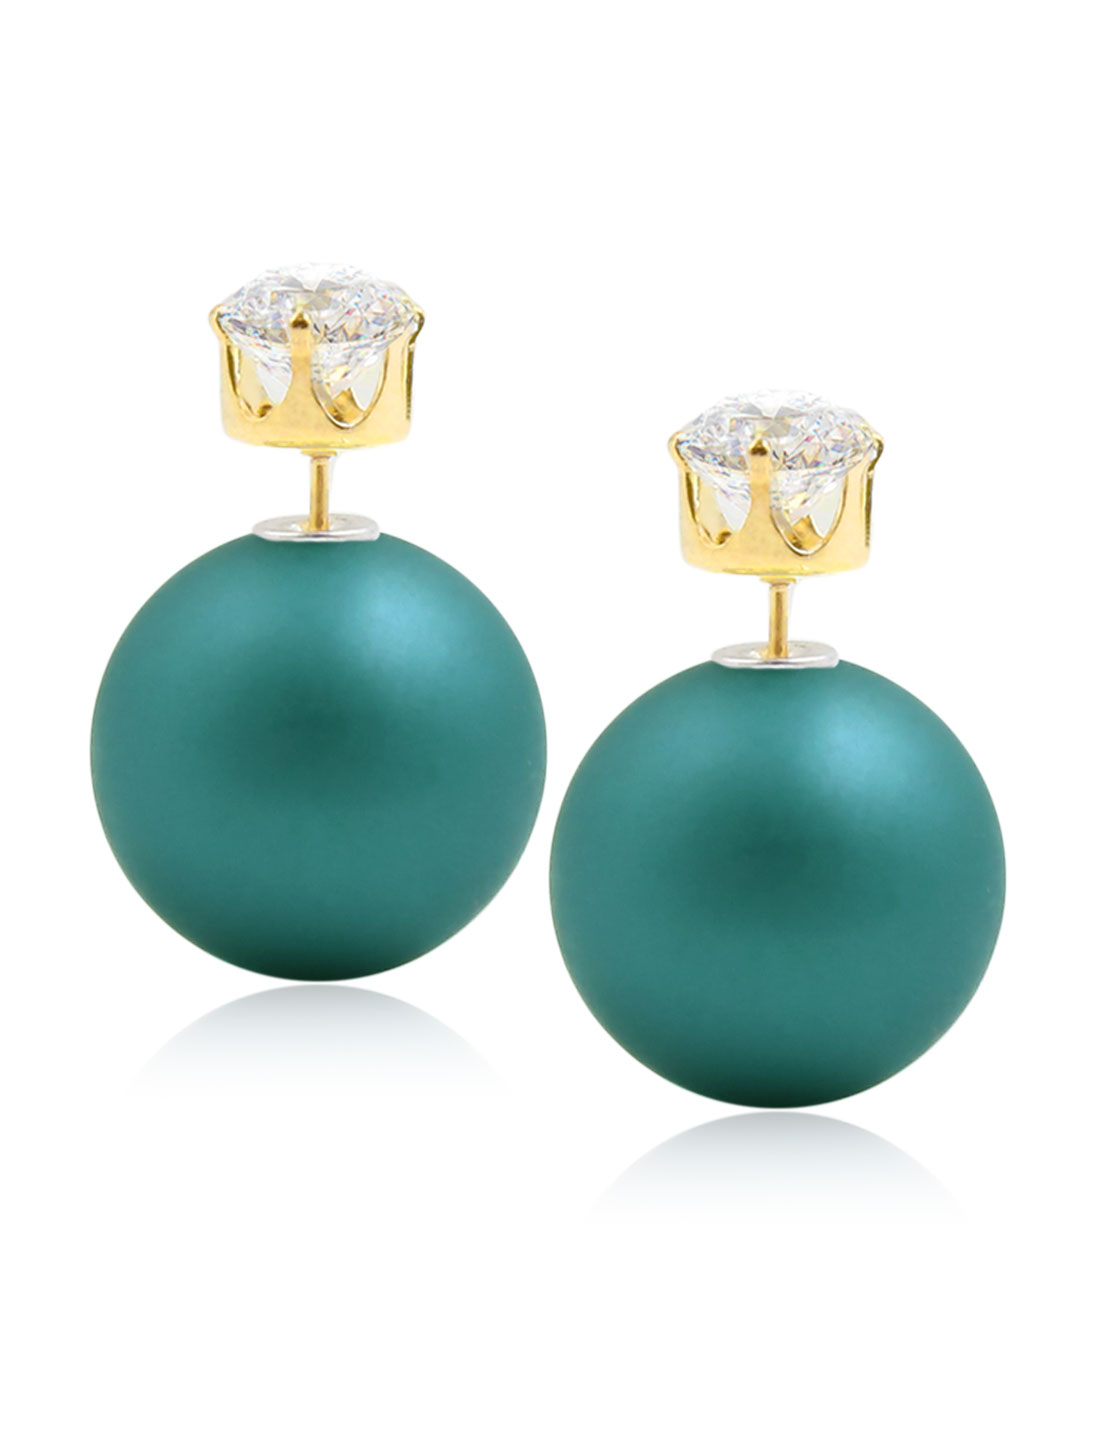 Fashion Women Elegant Double Sides Zircon Ball Earrings Ear Stud 1 Pair Dark Green with Gold